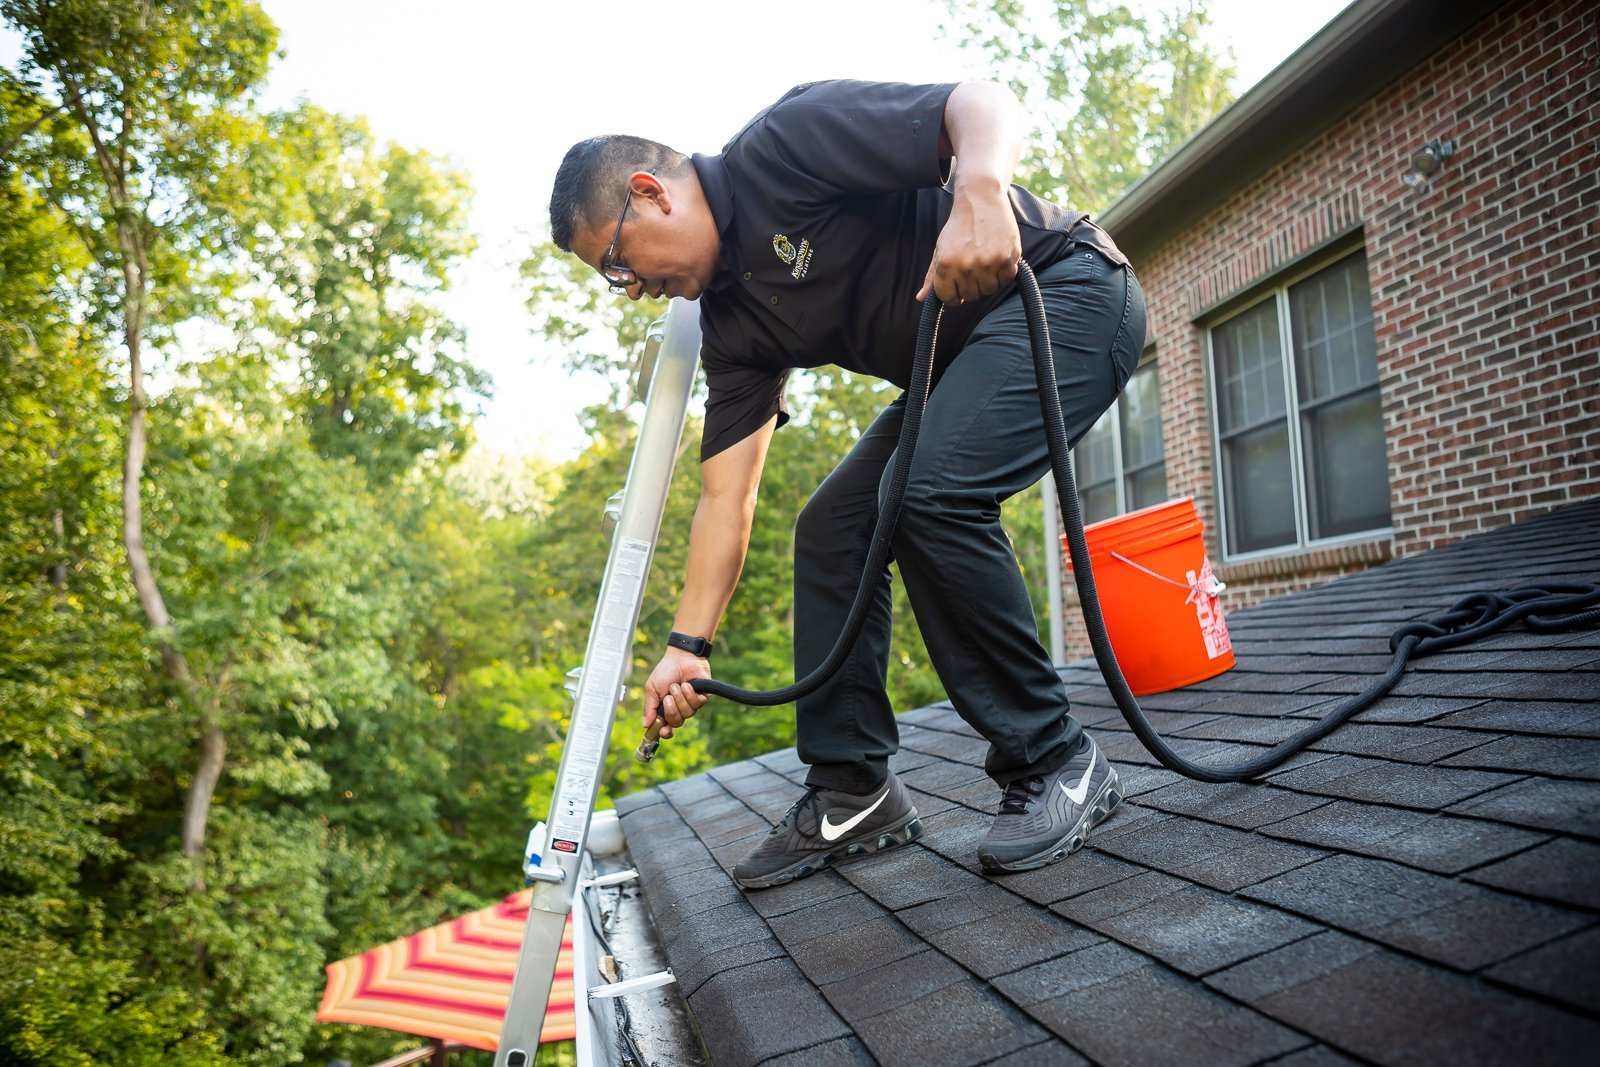 gutter cleaning service to get rid of mosquitoes